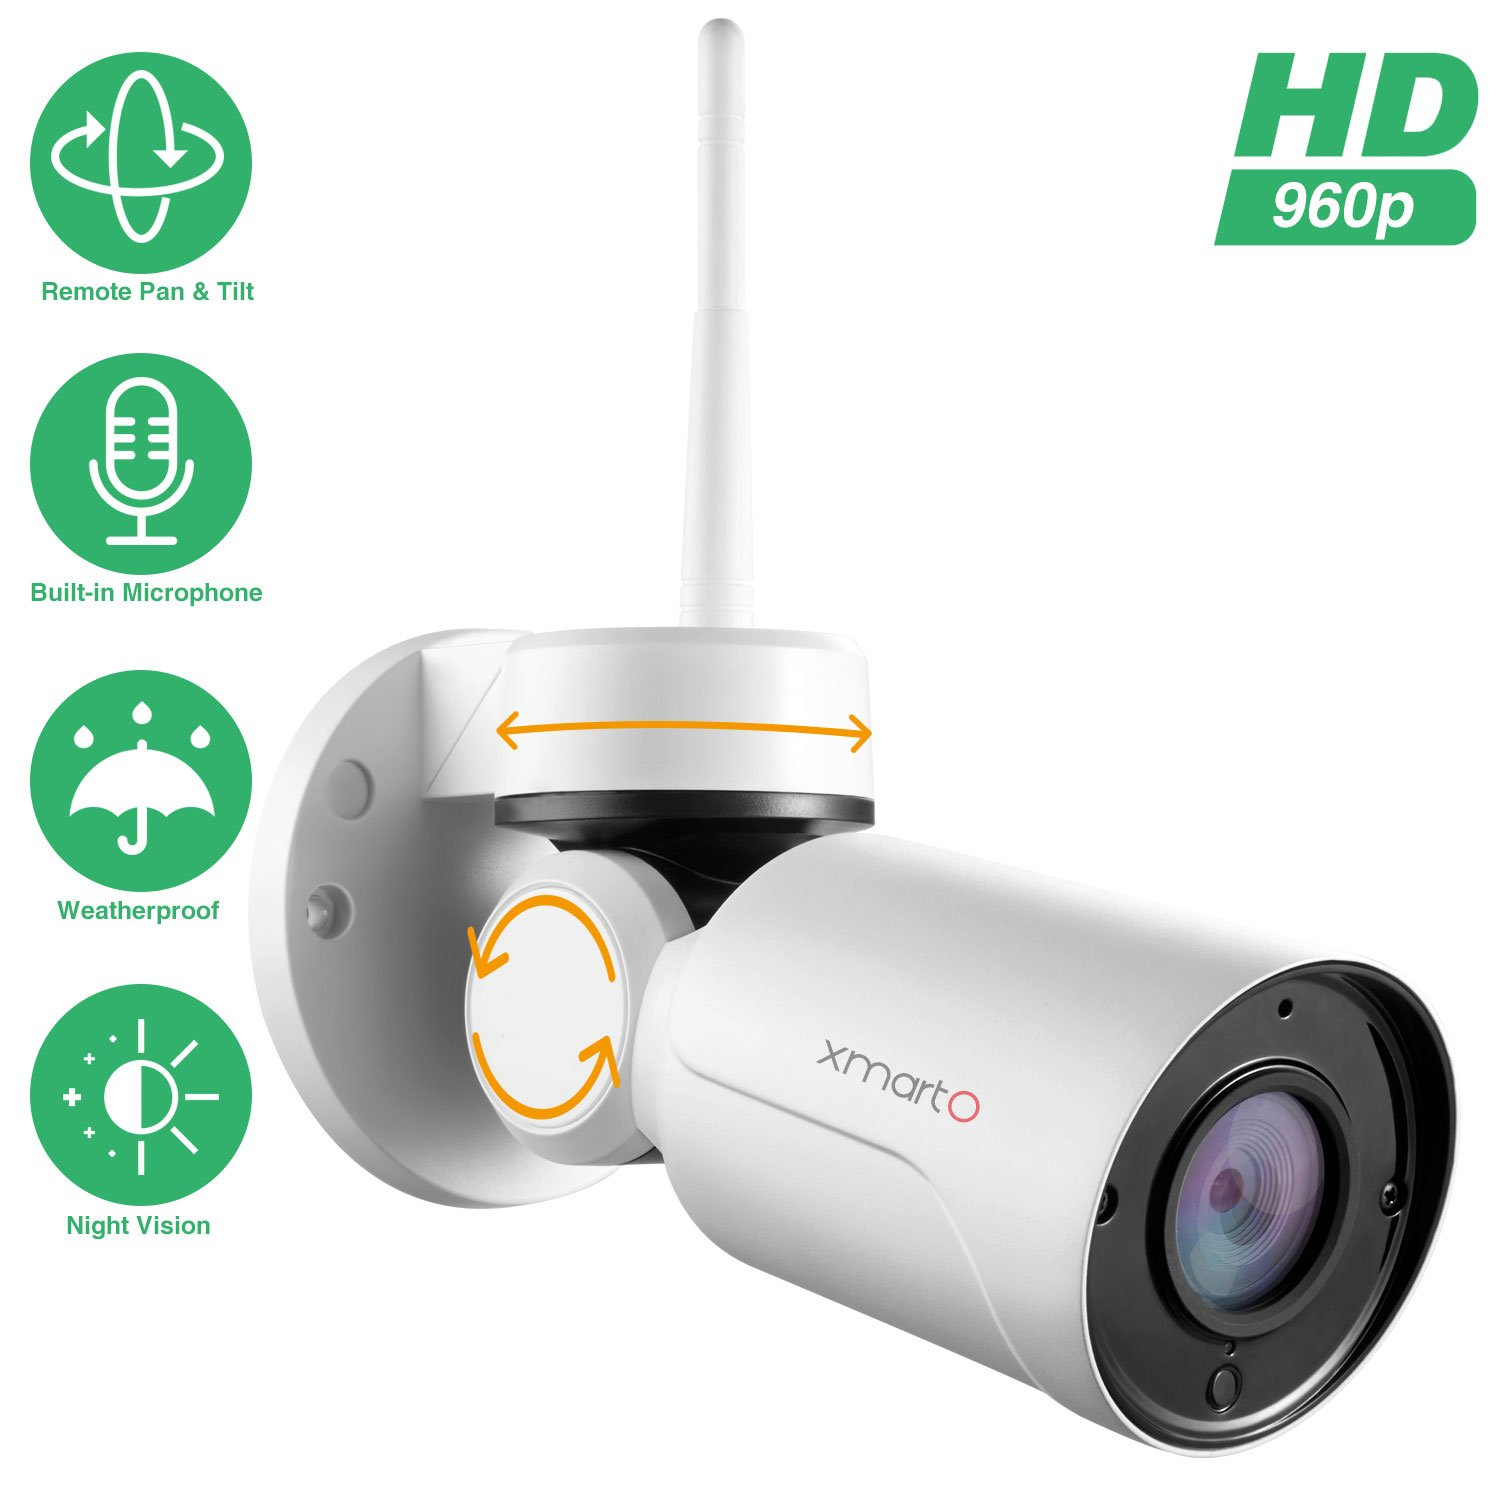 [PTZ & Built-in Mic] xmartO Add-on 960p HD Wireless Pan Tilt WiFi Security Camera with Audio, 180° Pan and 55° Tilt Remote Control, 80ft IR Night Vision, 4mm Lens, 4X Digital Zoom by xmartO